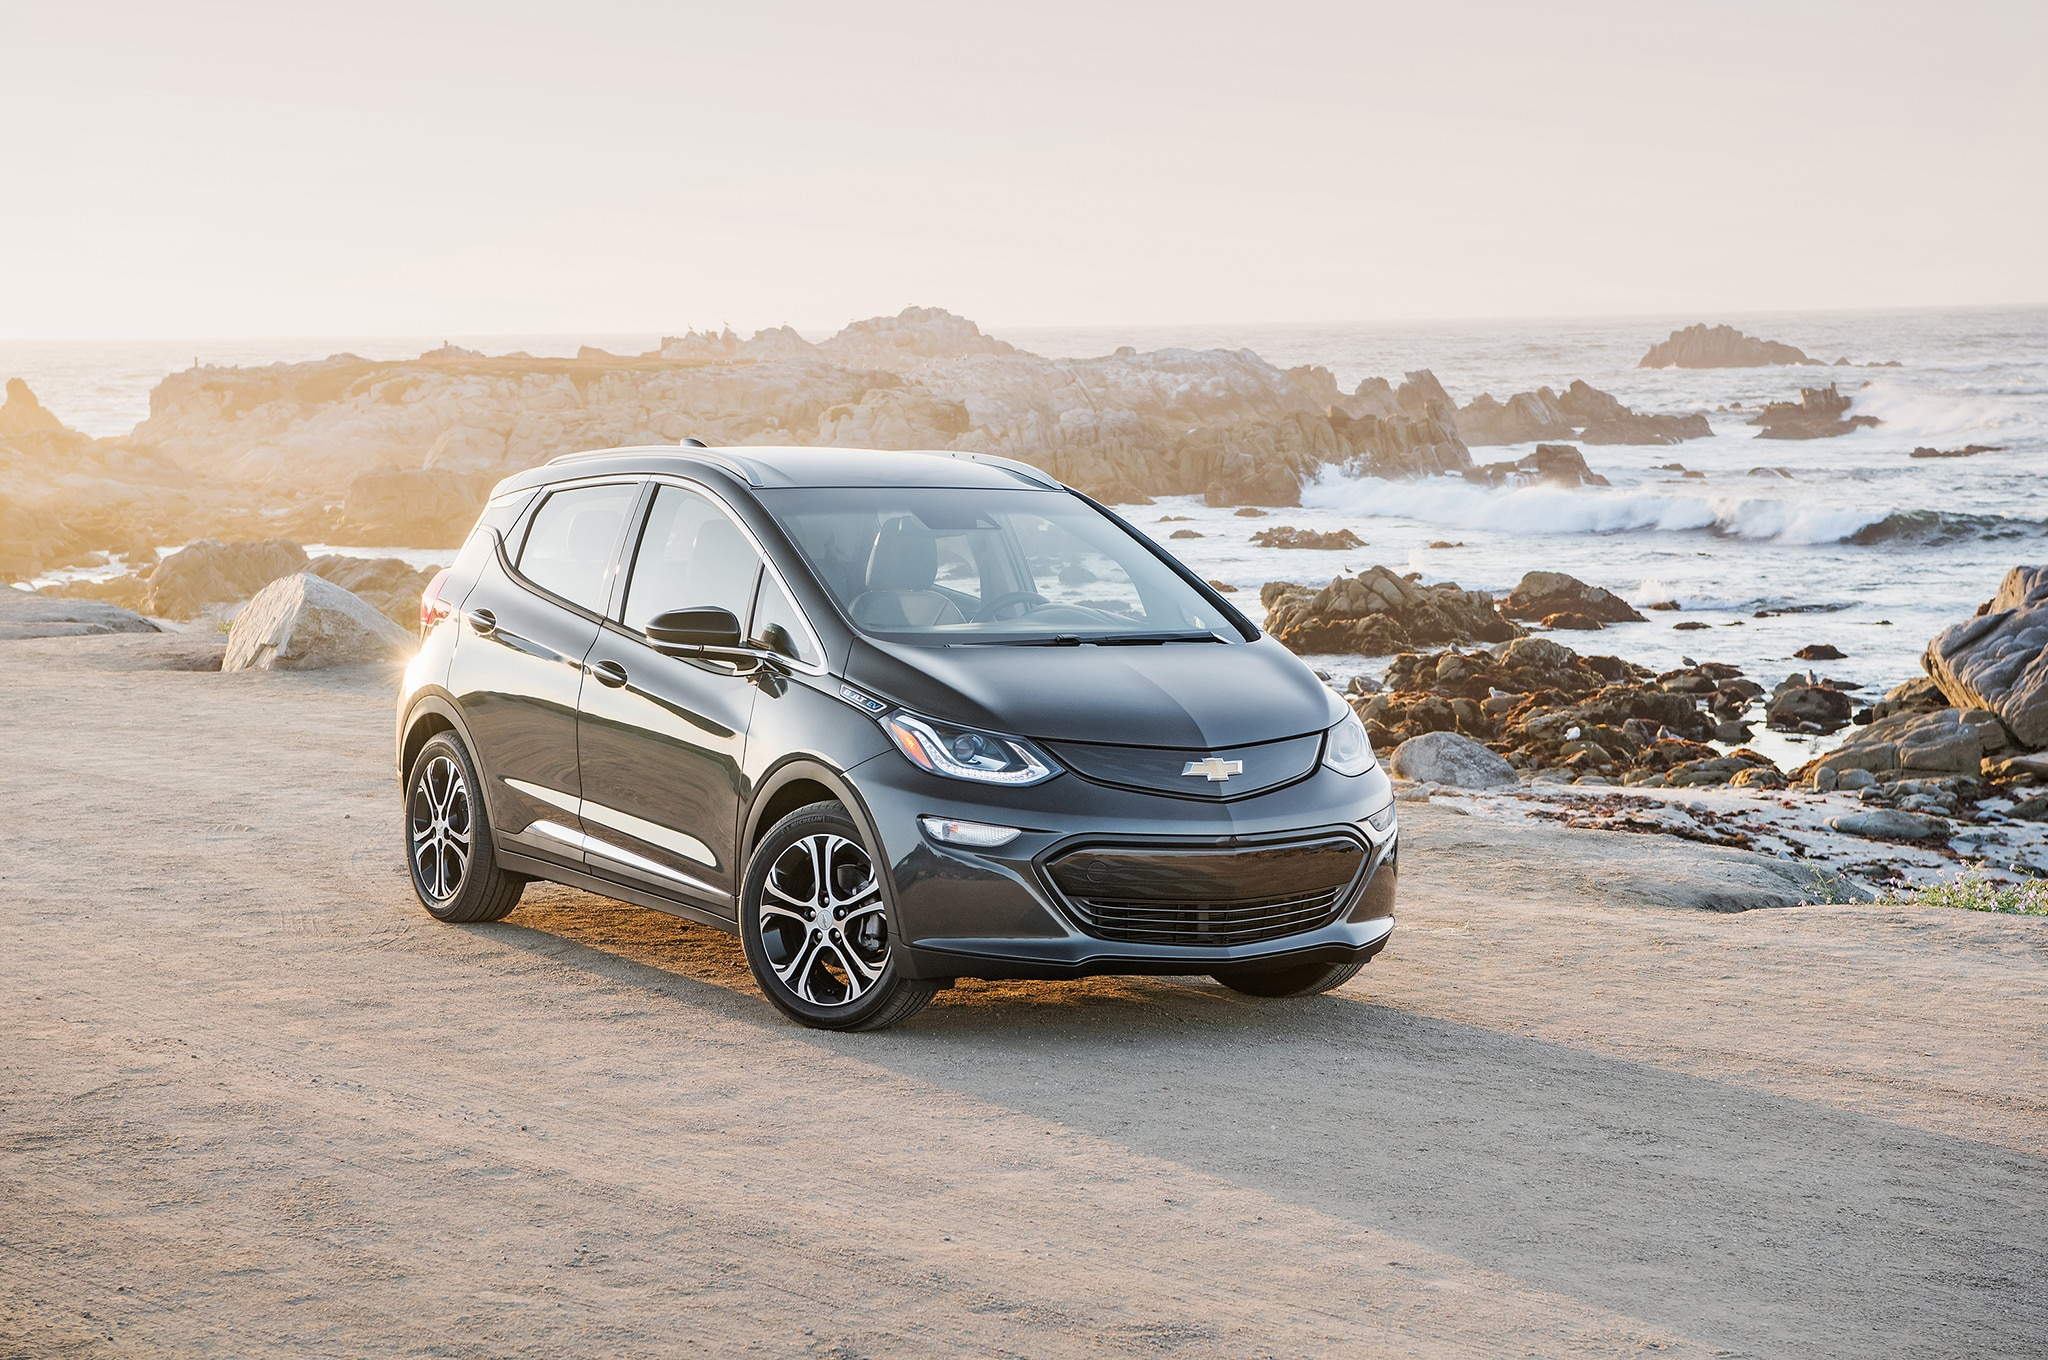 2017 Chevrolet Bolt EV Front Three Quarter 04